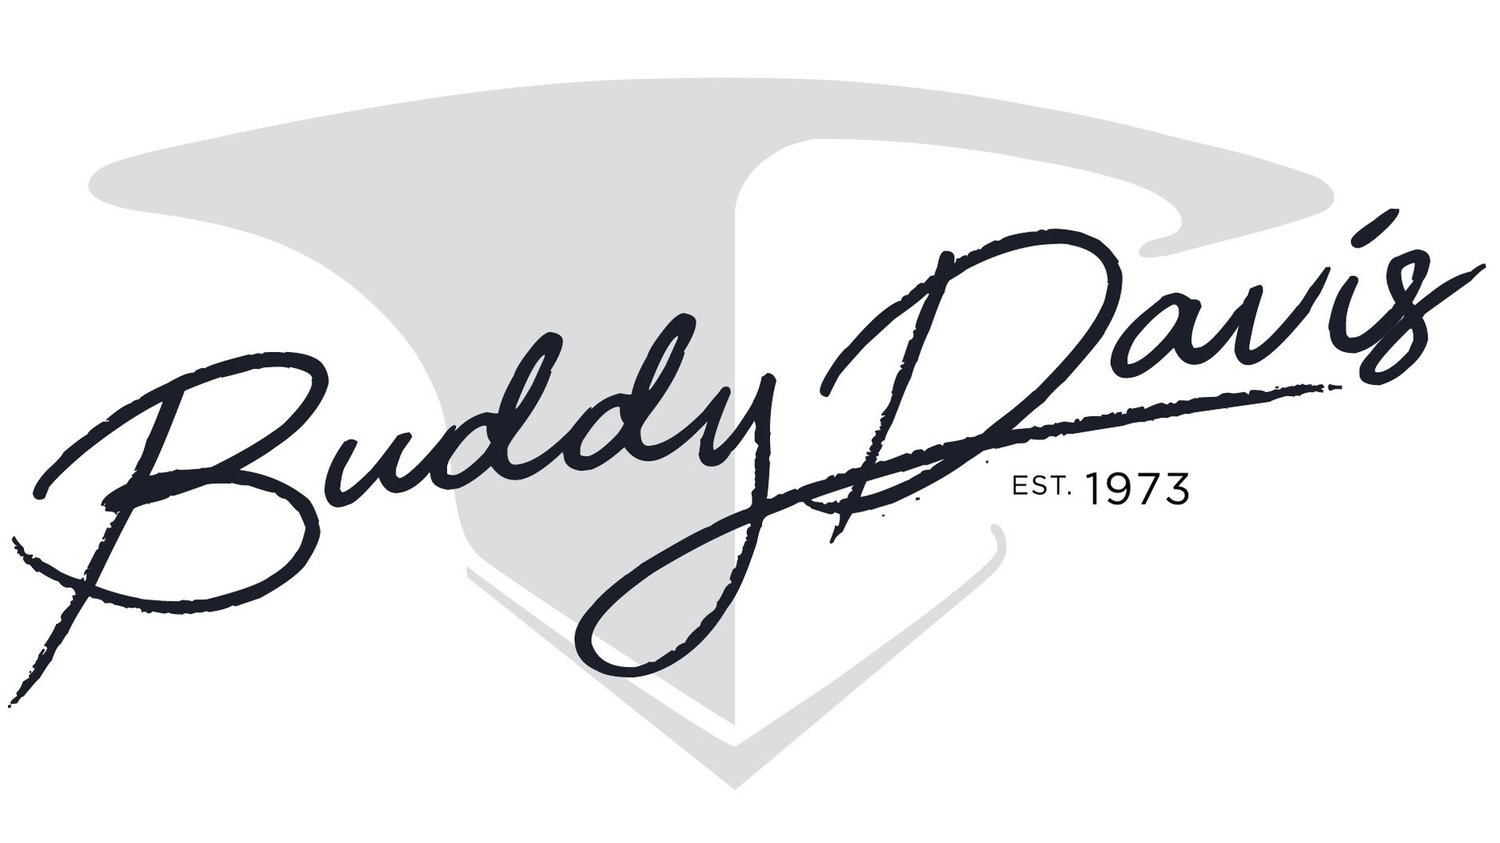 Buddy Davis Shop